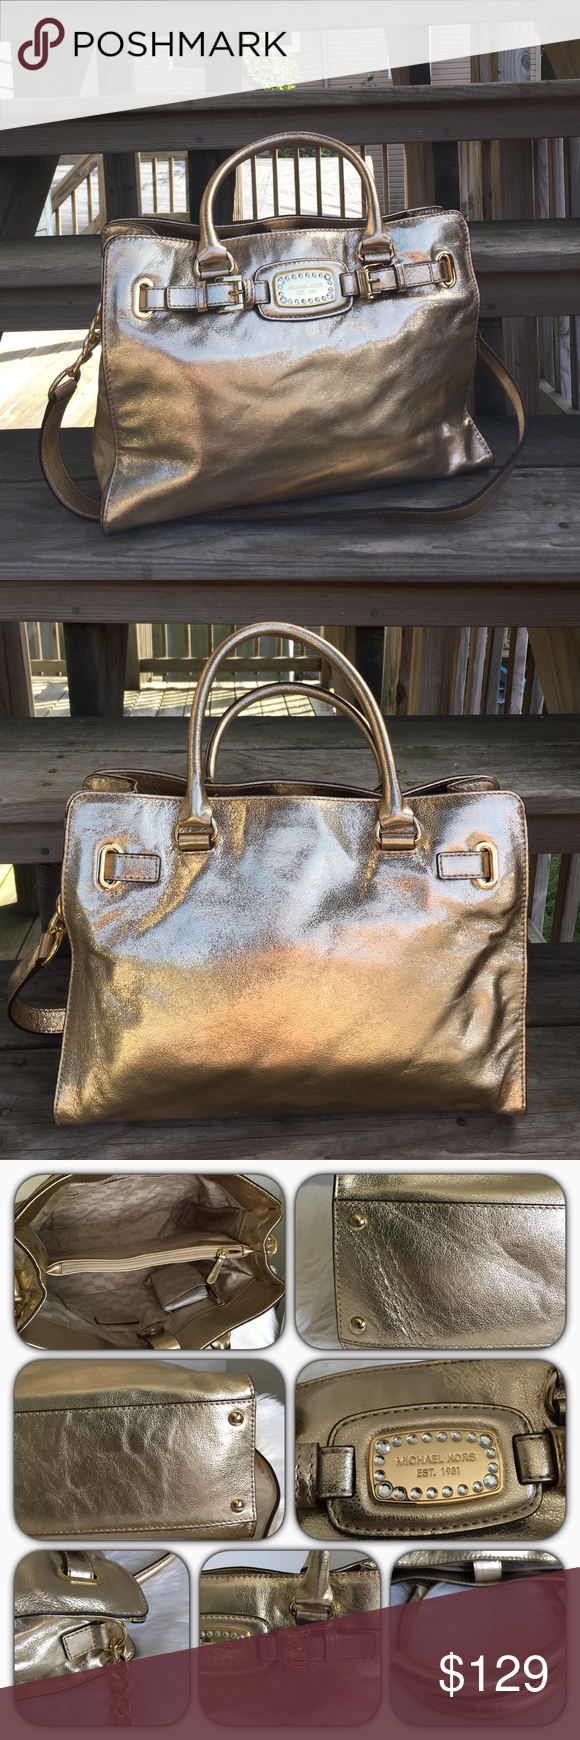 •Michael Kors Handbag• Authentic MK Jewel Hamilton Handbag/gold leather/gold tone hardware/inside features: one zippered pocket and multiple slip pockets/fully lined/magnetic snap closure/only worn twice/no rips or stains/code reads: AV-1406/please ask if you have any other questions before buying/thanks for looking Michael Kors Bags